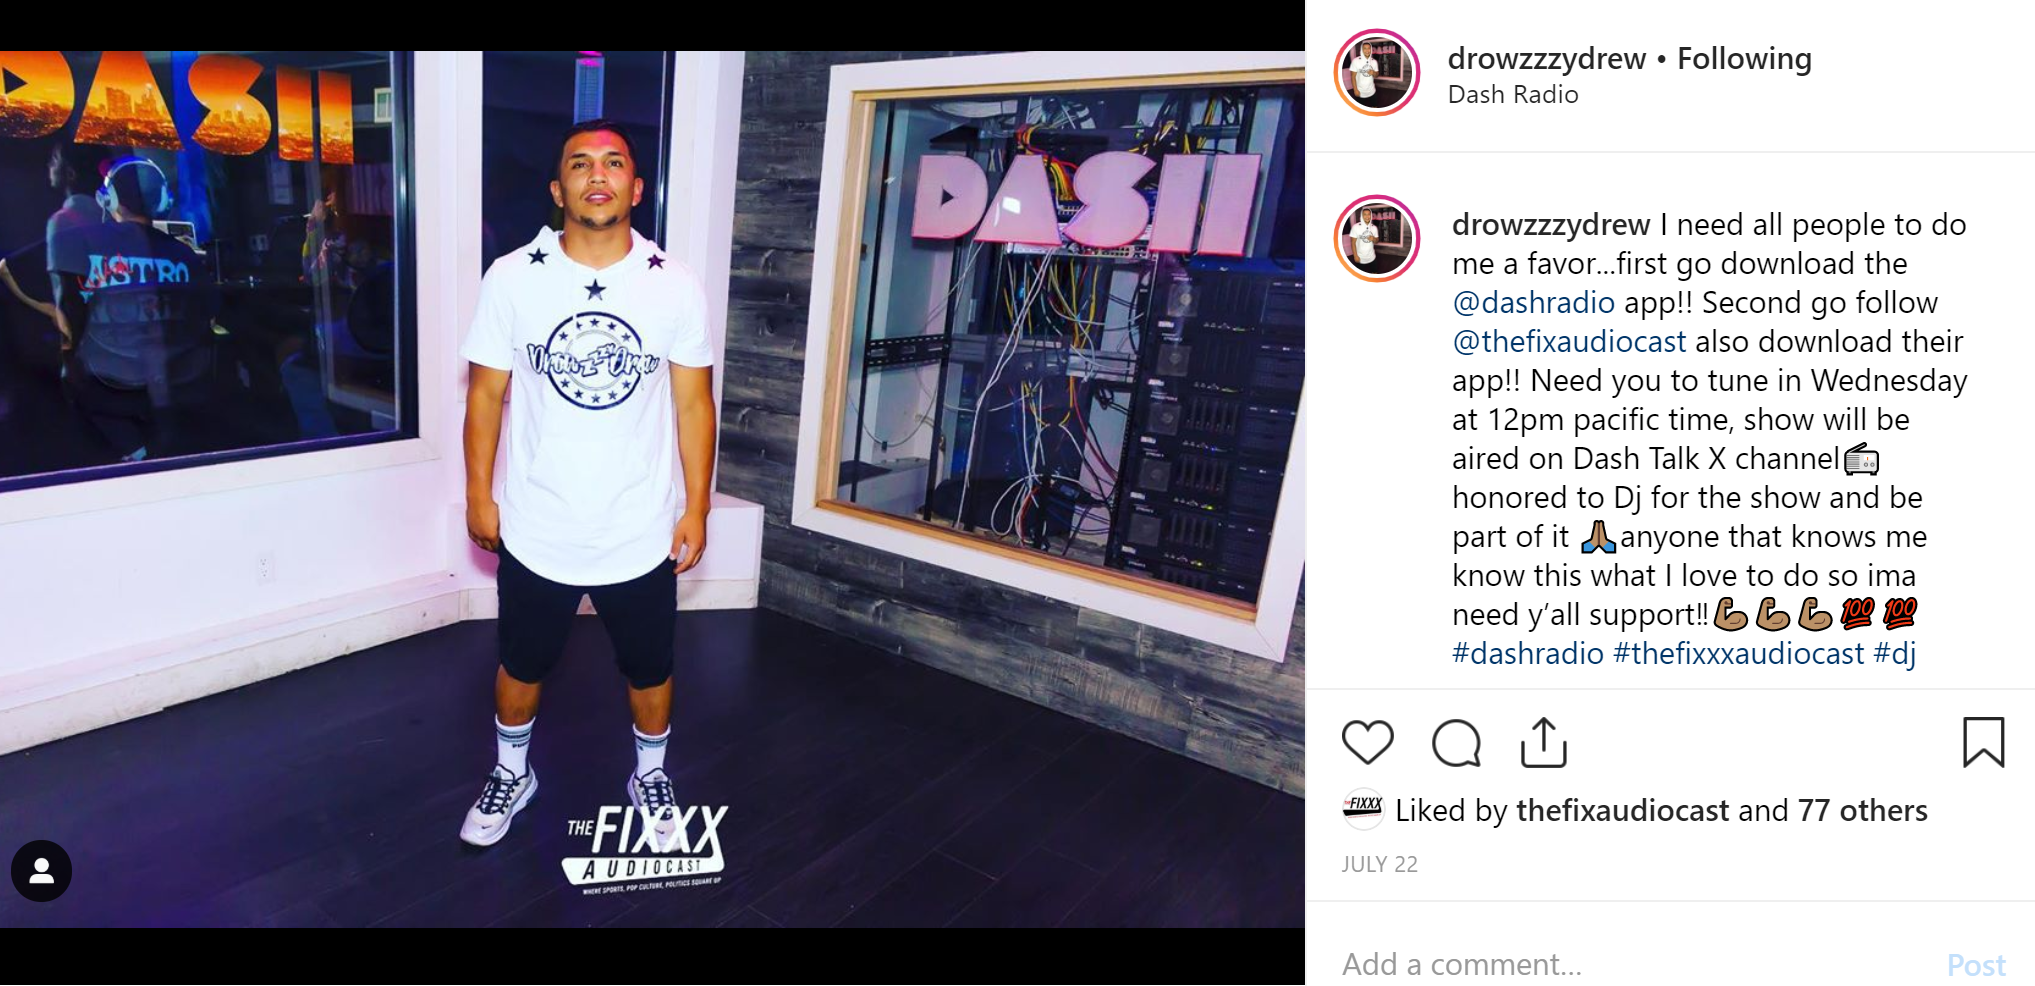 DJ Drowzzzy Drew rocking his signature merchandise at Dash Radio in Hollywood. Picture by Dumisani Maraire Jr. for VlogPics.com and used courtesy of @drowzzzeydrew on instagram.